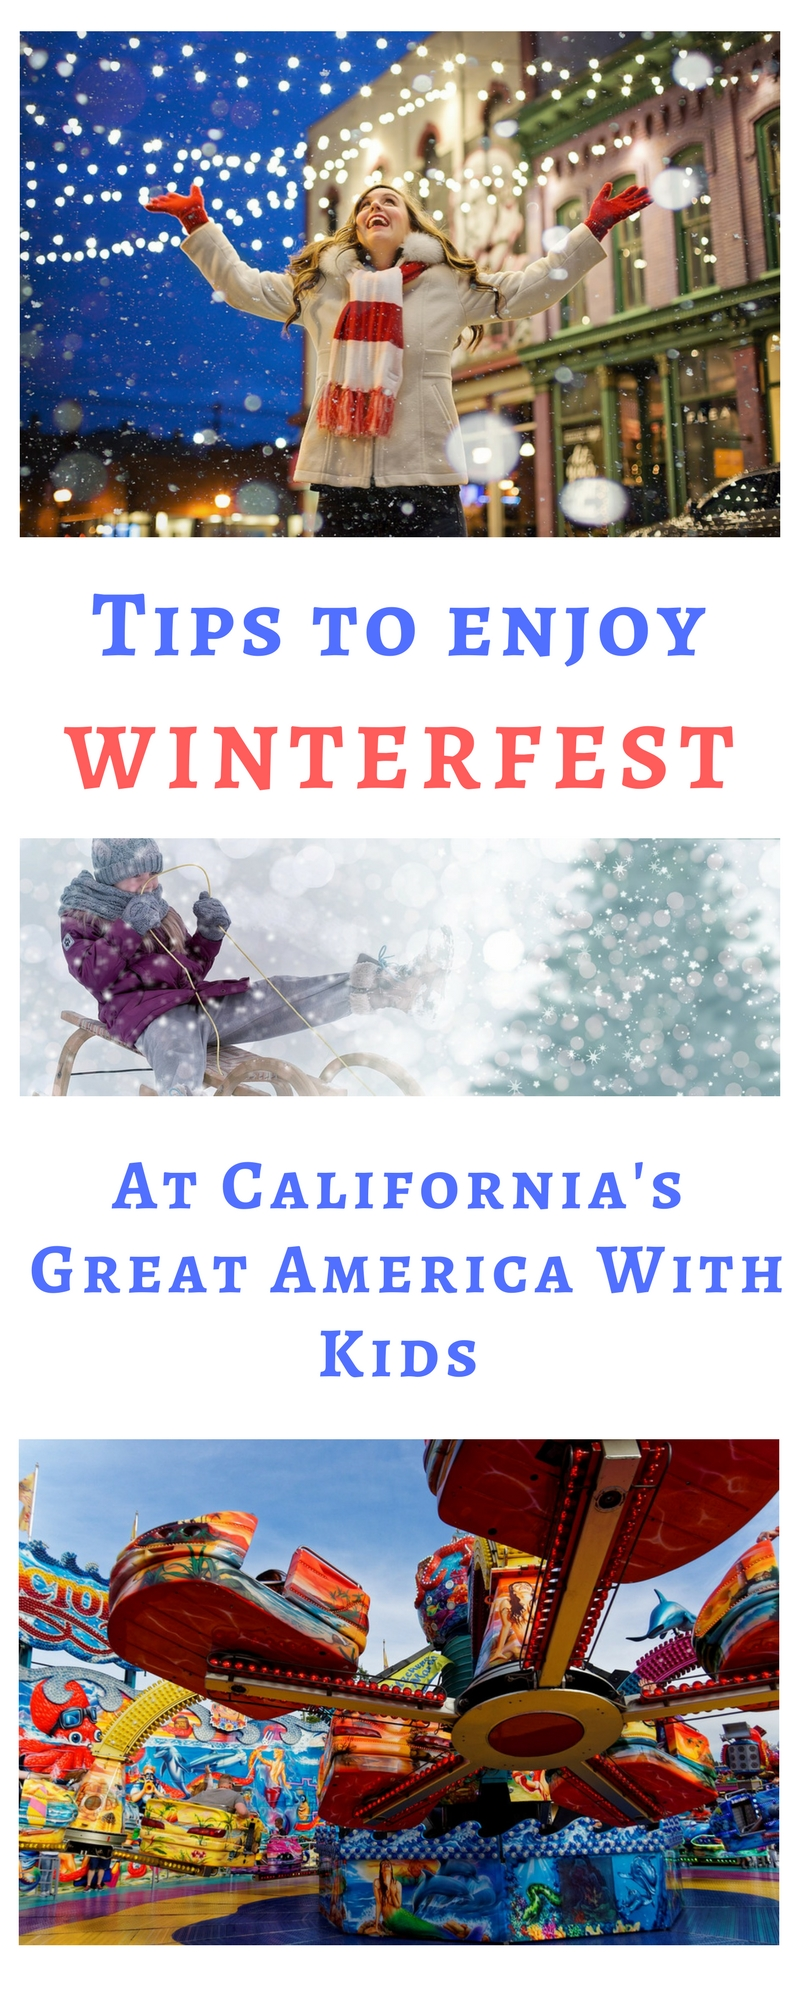 Tips to enjoy Winterfest at California's Great America with kids